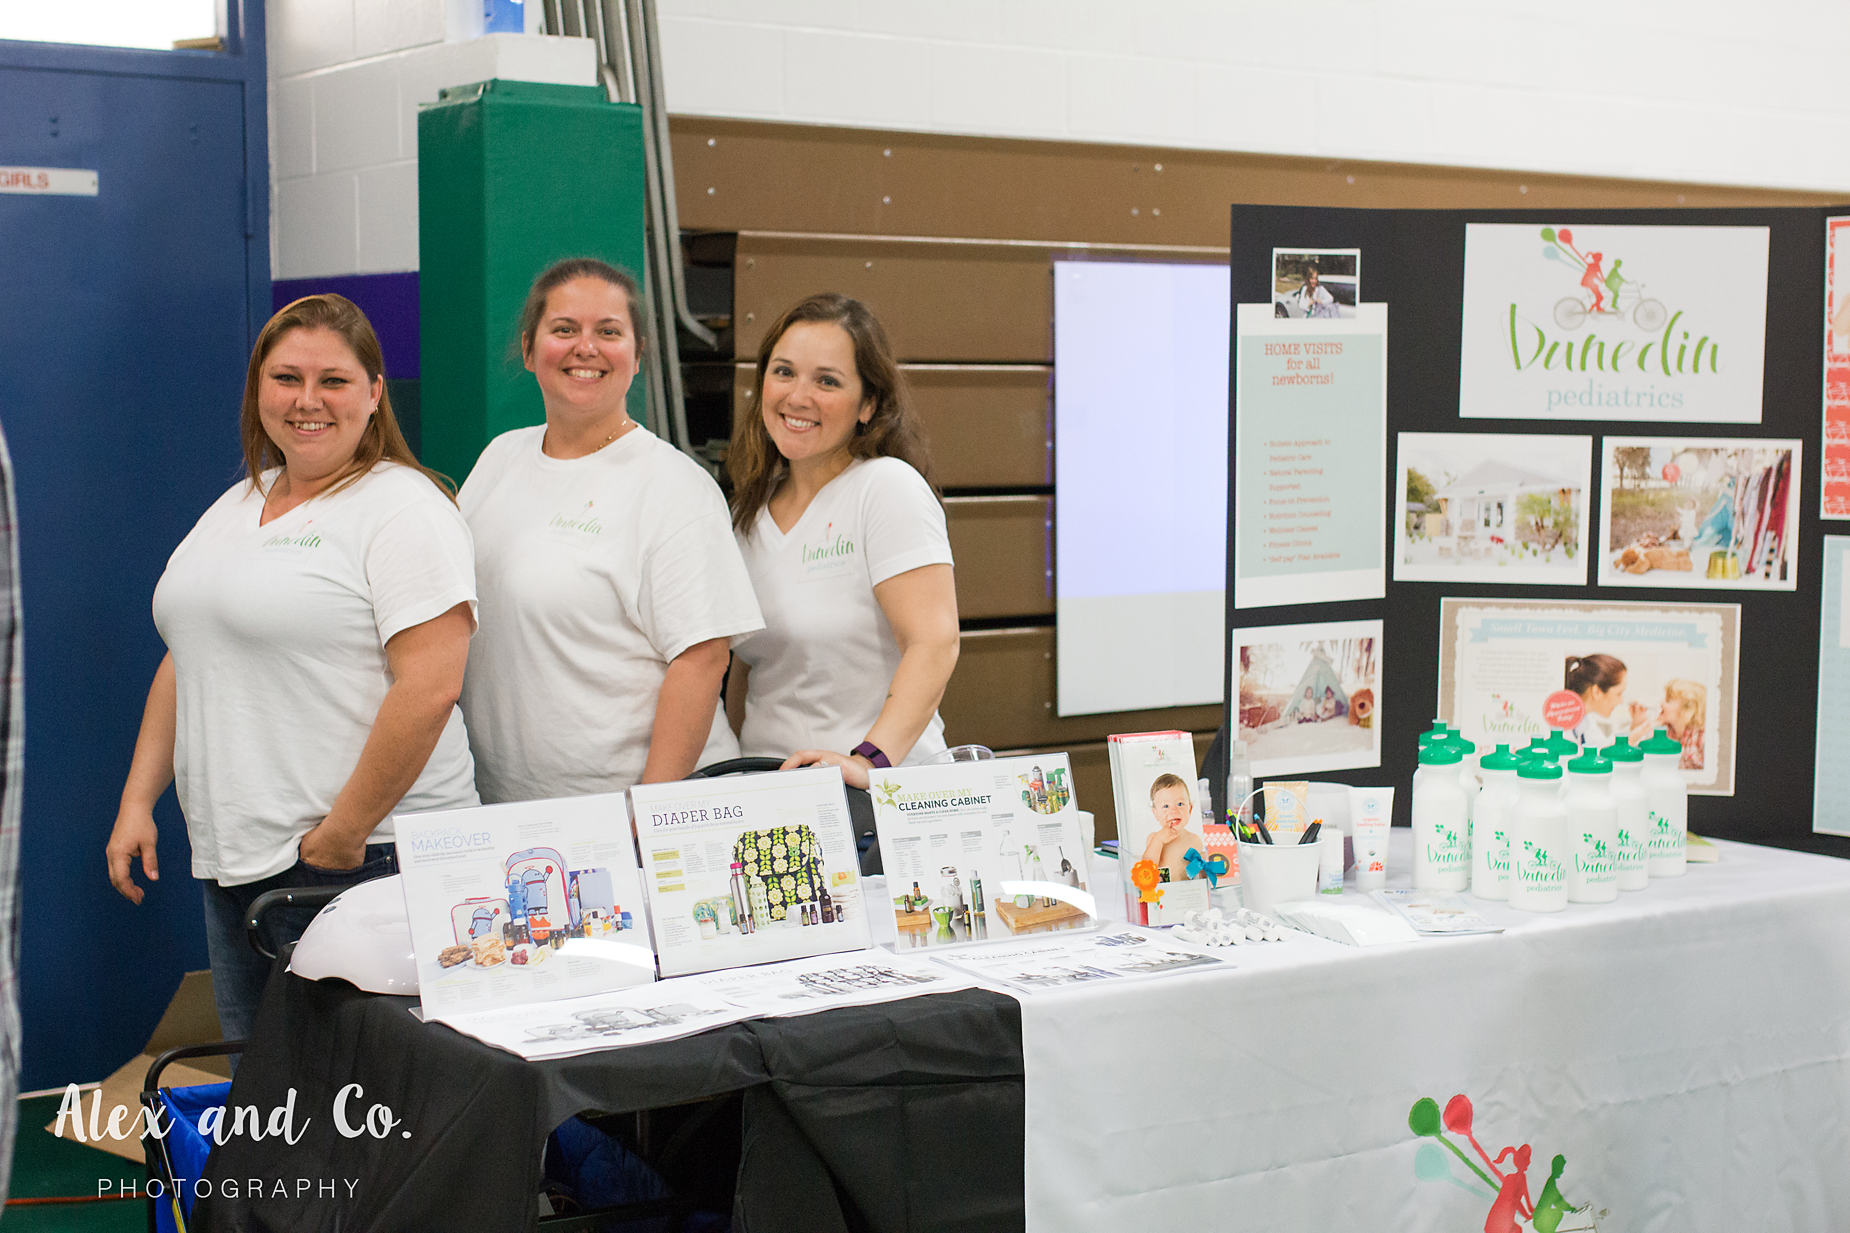 Alex and Co. Photography | Tampa Bay Birth Network | Natural Birth & Baby Expo 2016 | Dunedin Pediatrics